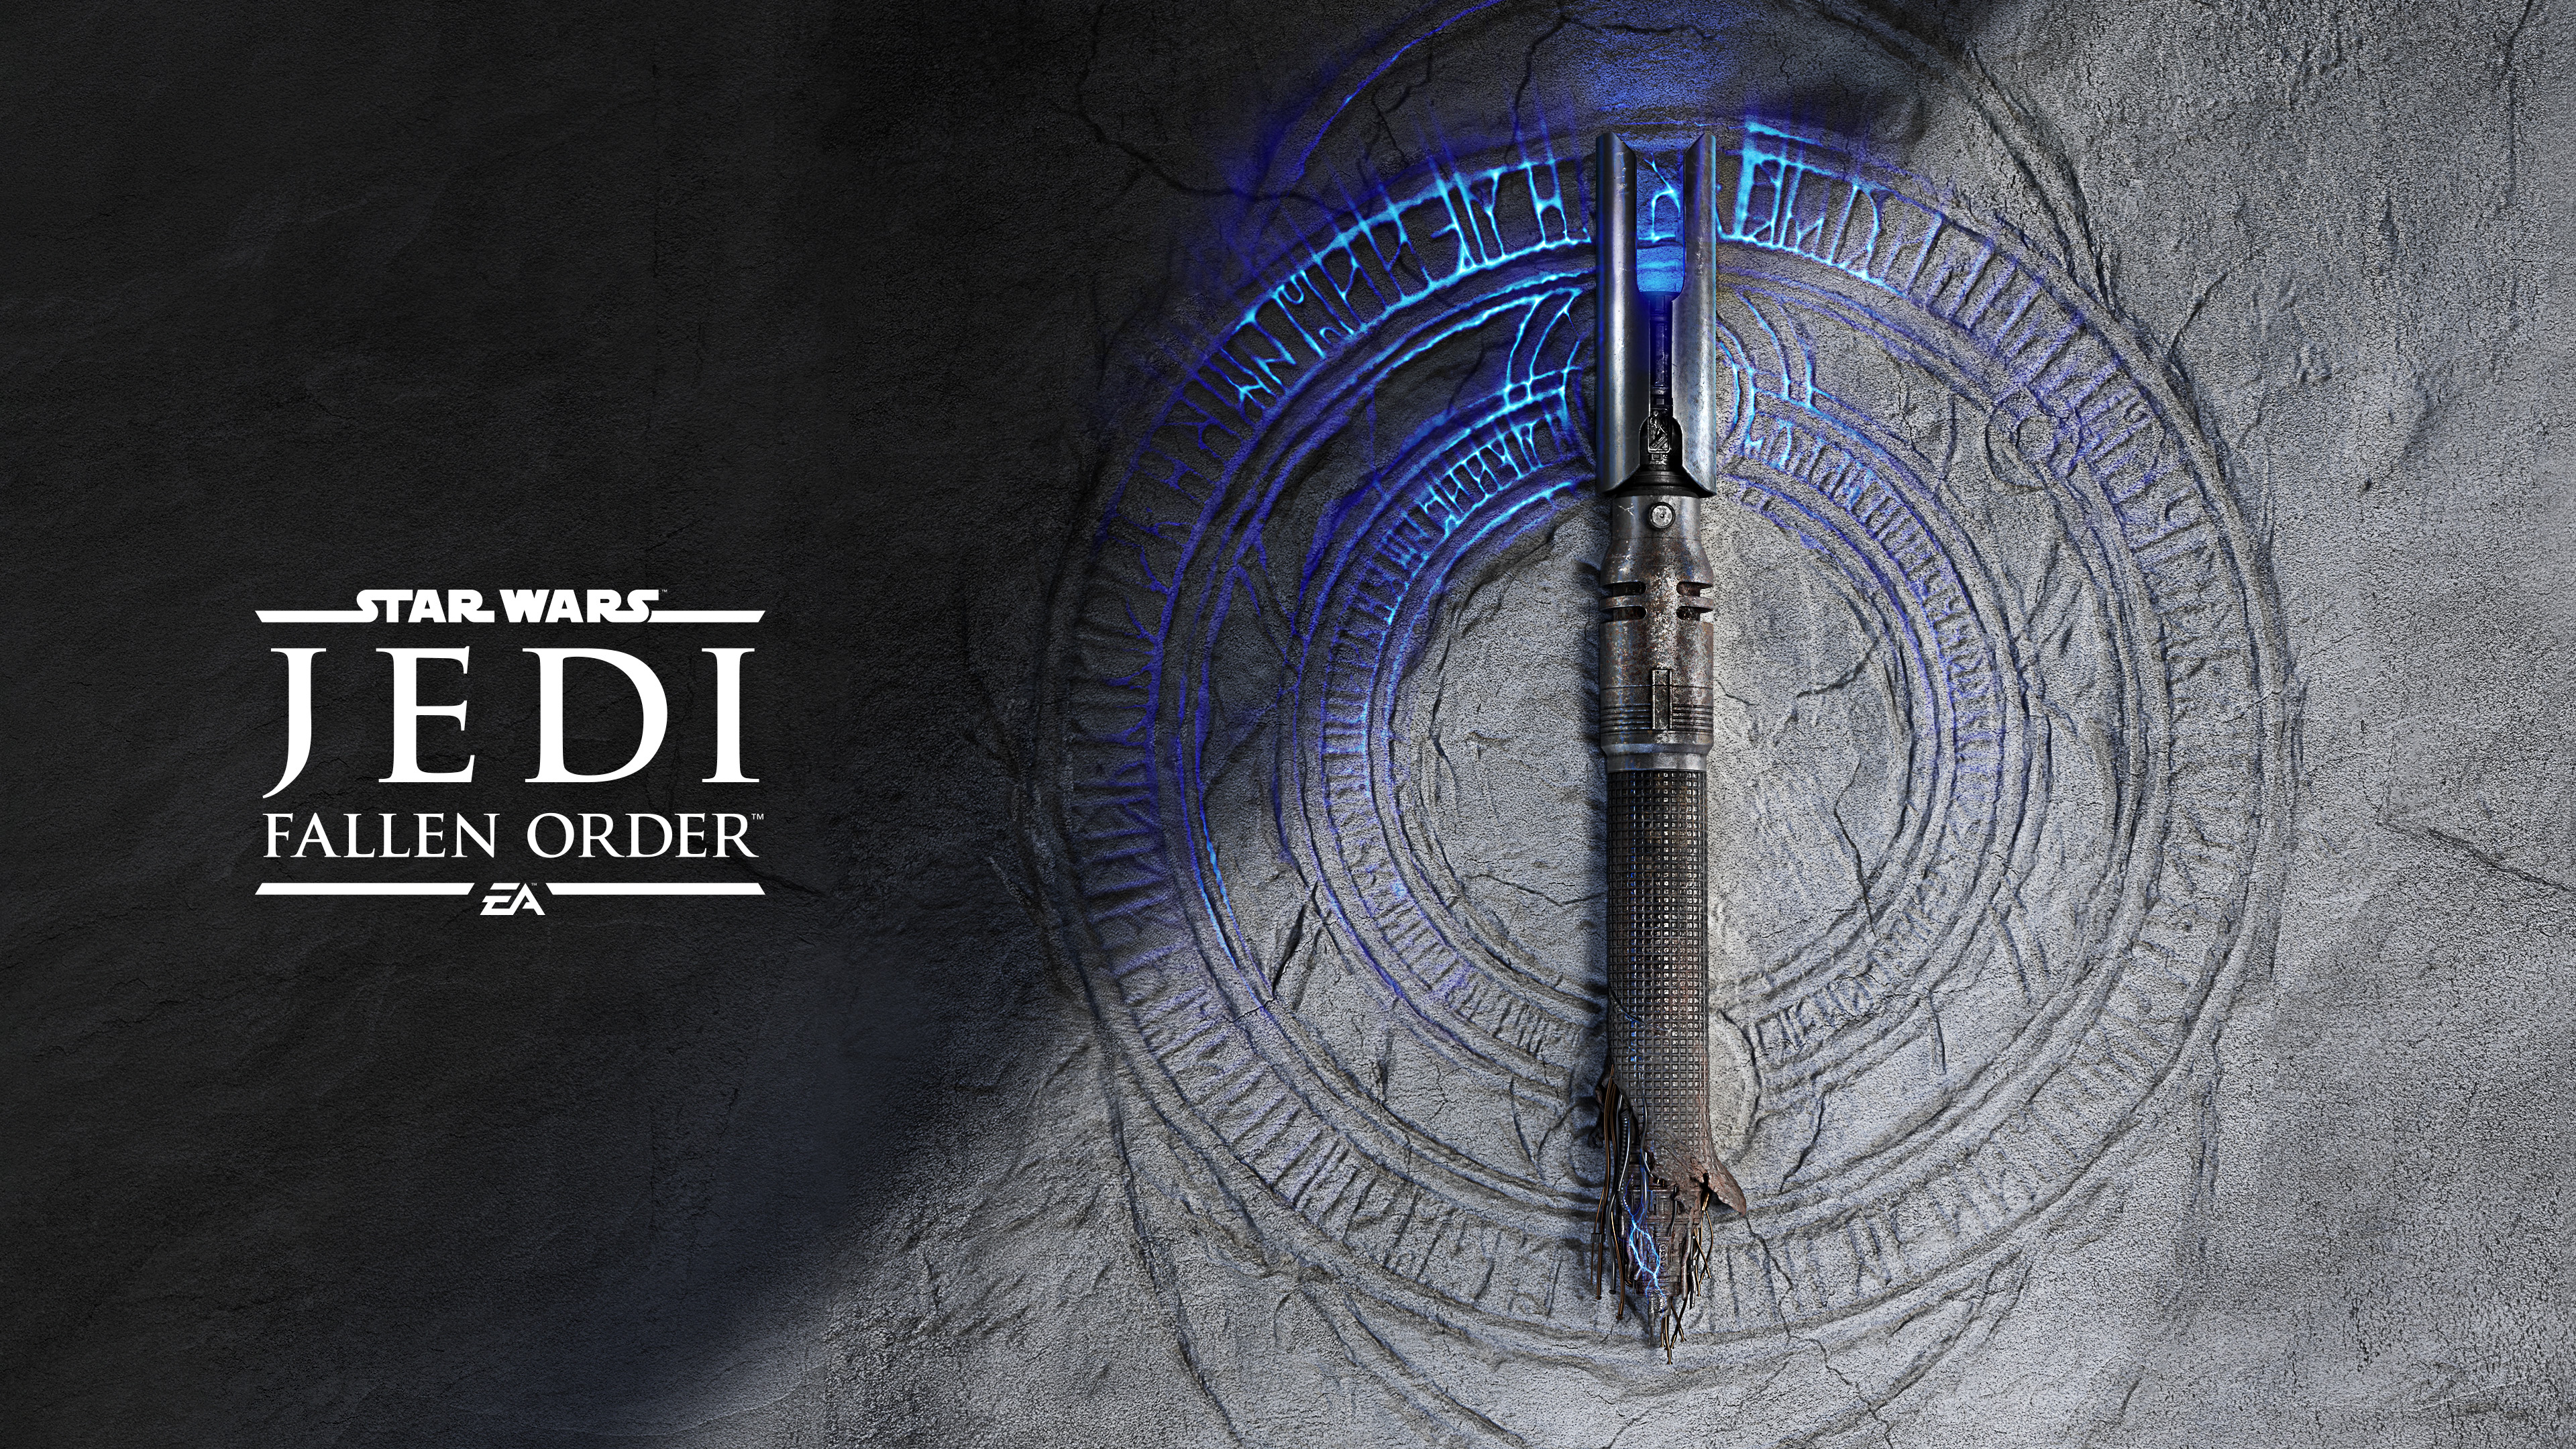 Star Wars Jedi Fallen Order  Trailers and Media   EA Official Site 3840x2160